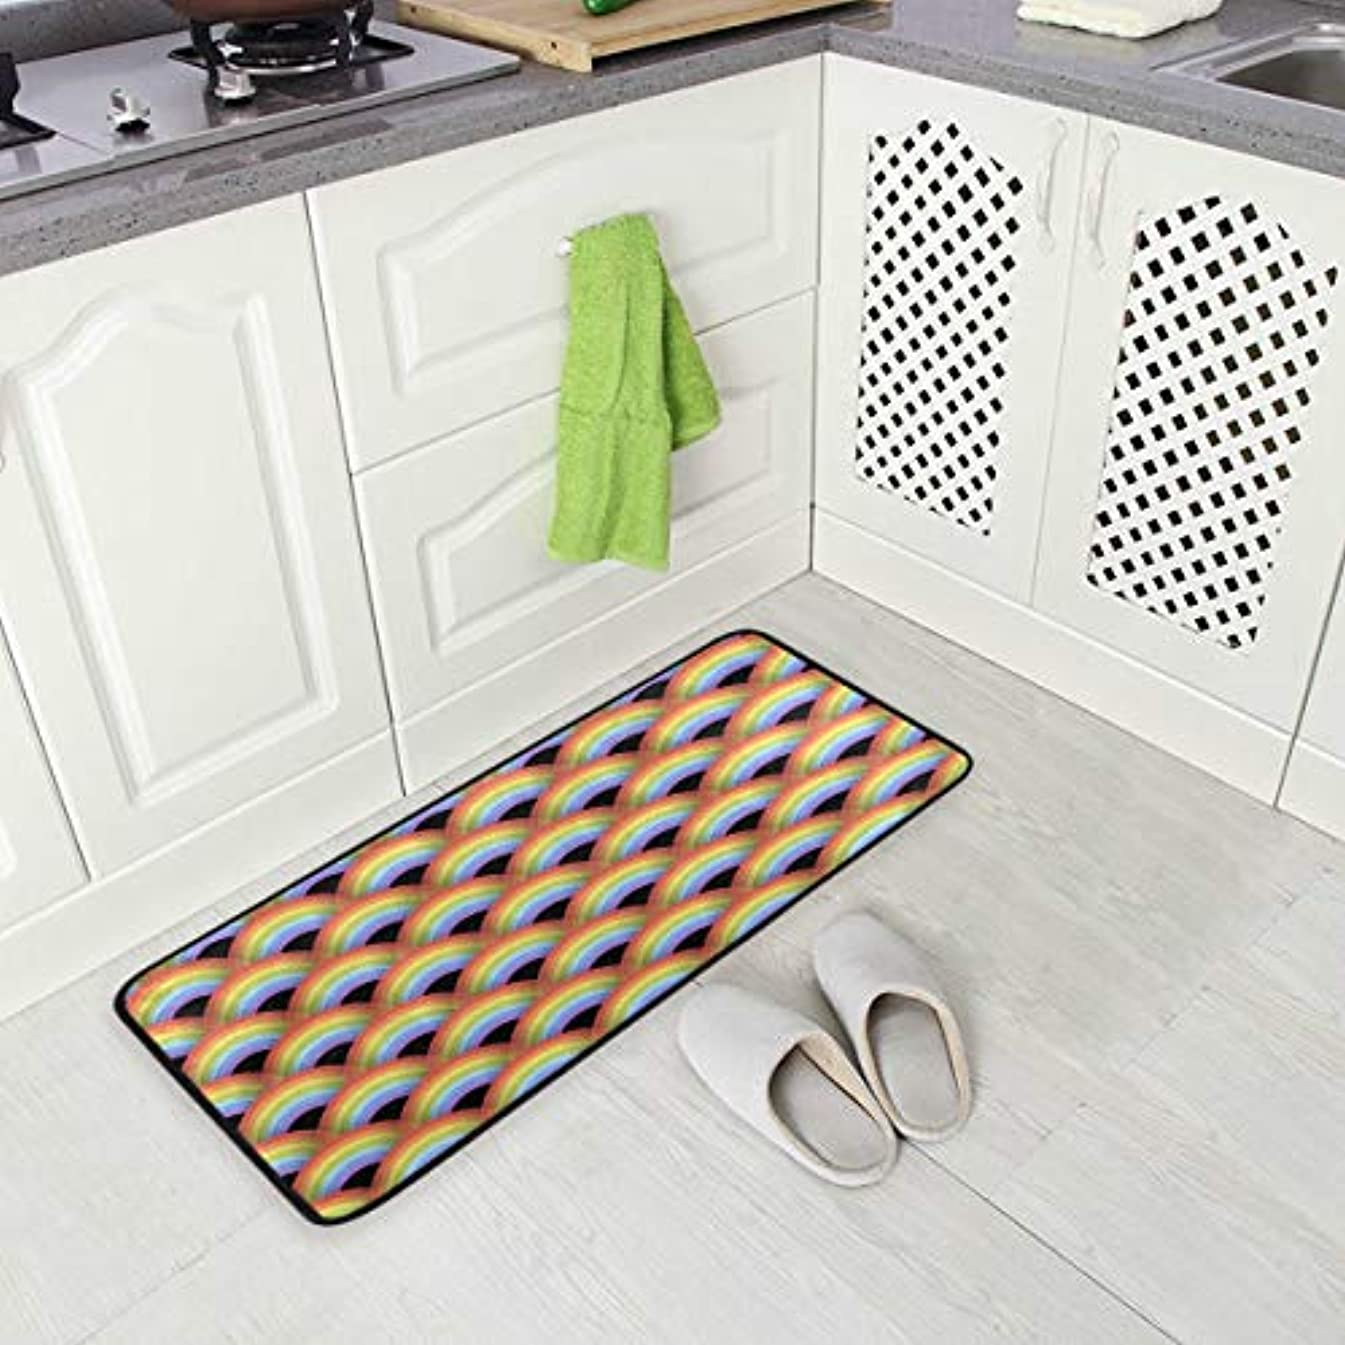 Japanese Colorful Geometric Kitchen Floor Mat, Non-Slip Comfort Office Standing Cushioned Rug Home Decor Indoor Outdoor, 39